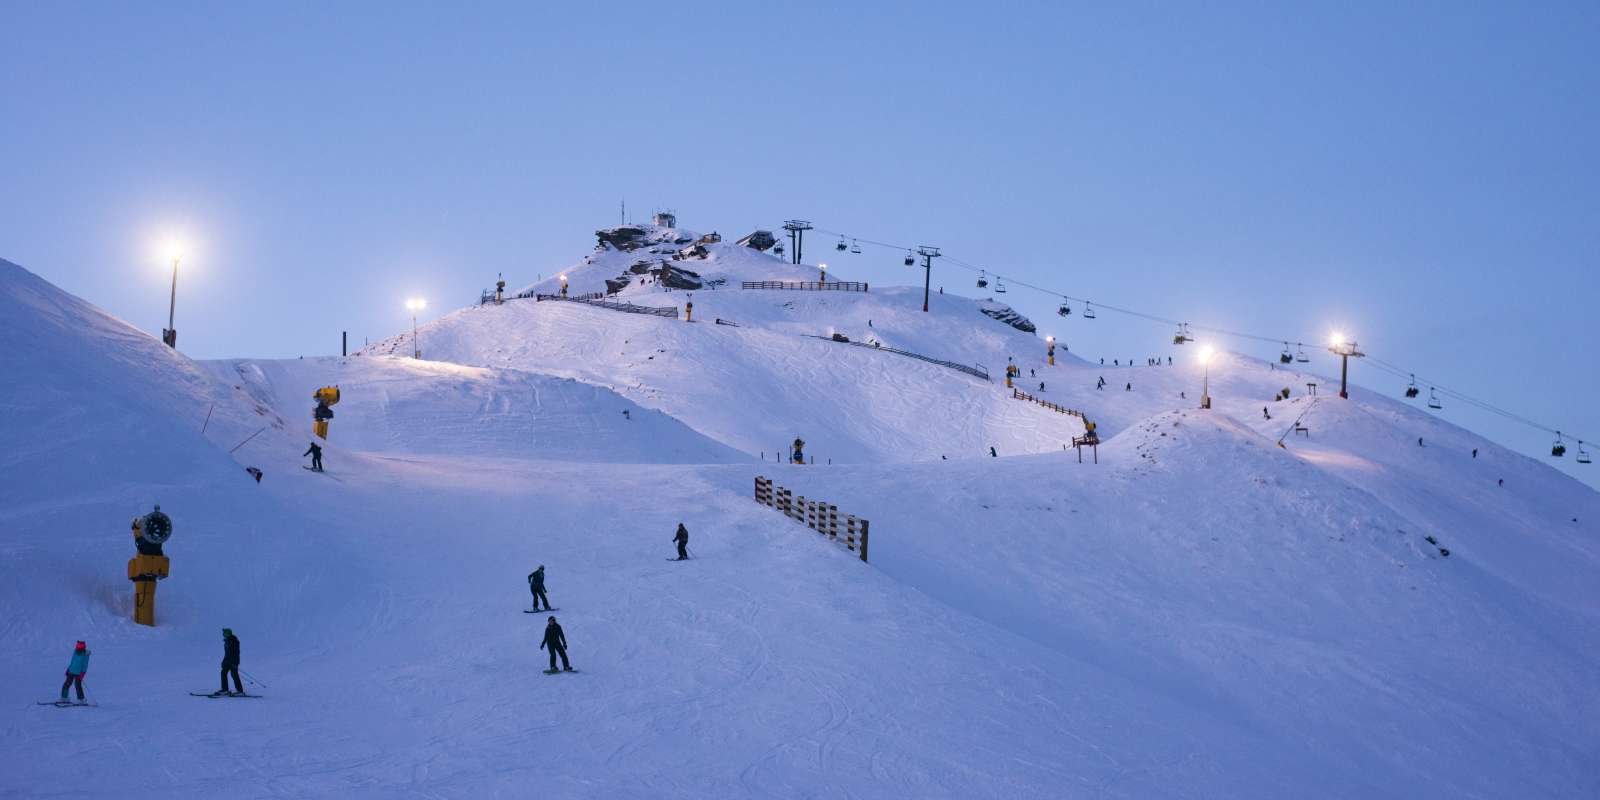 Night Ski at Coronet Peak